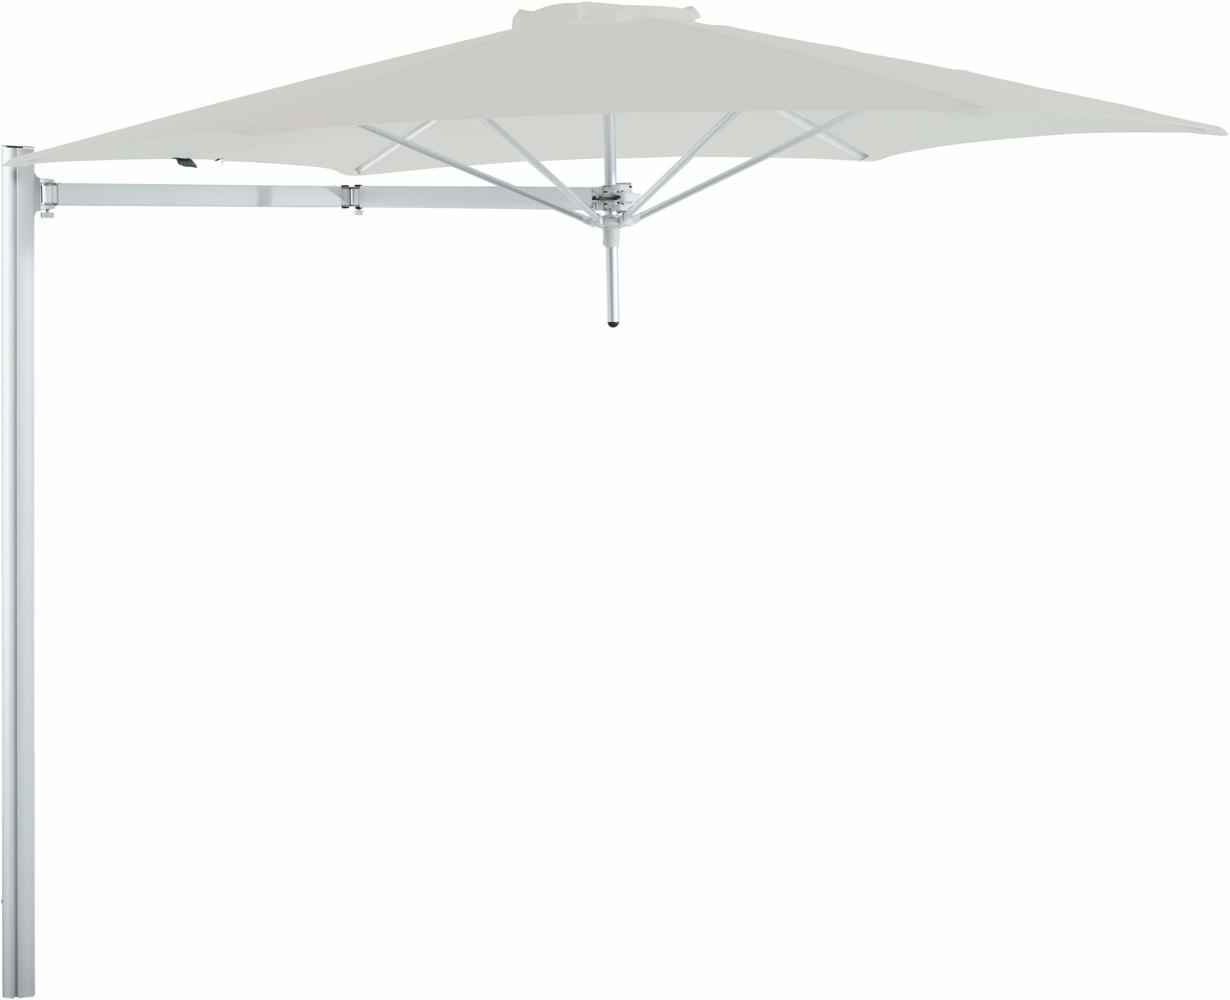 Paraflex cantilever umbrella round 3 m with Canvas fabric and a Neo arm